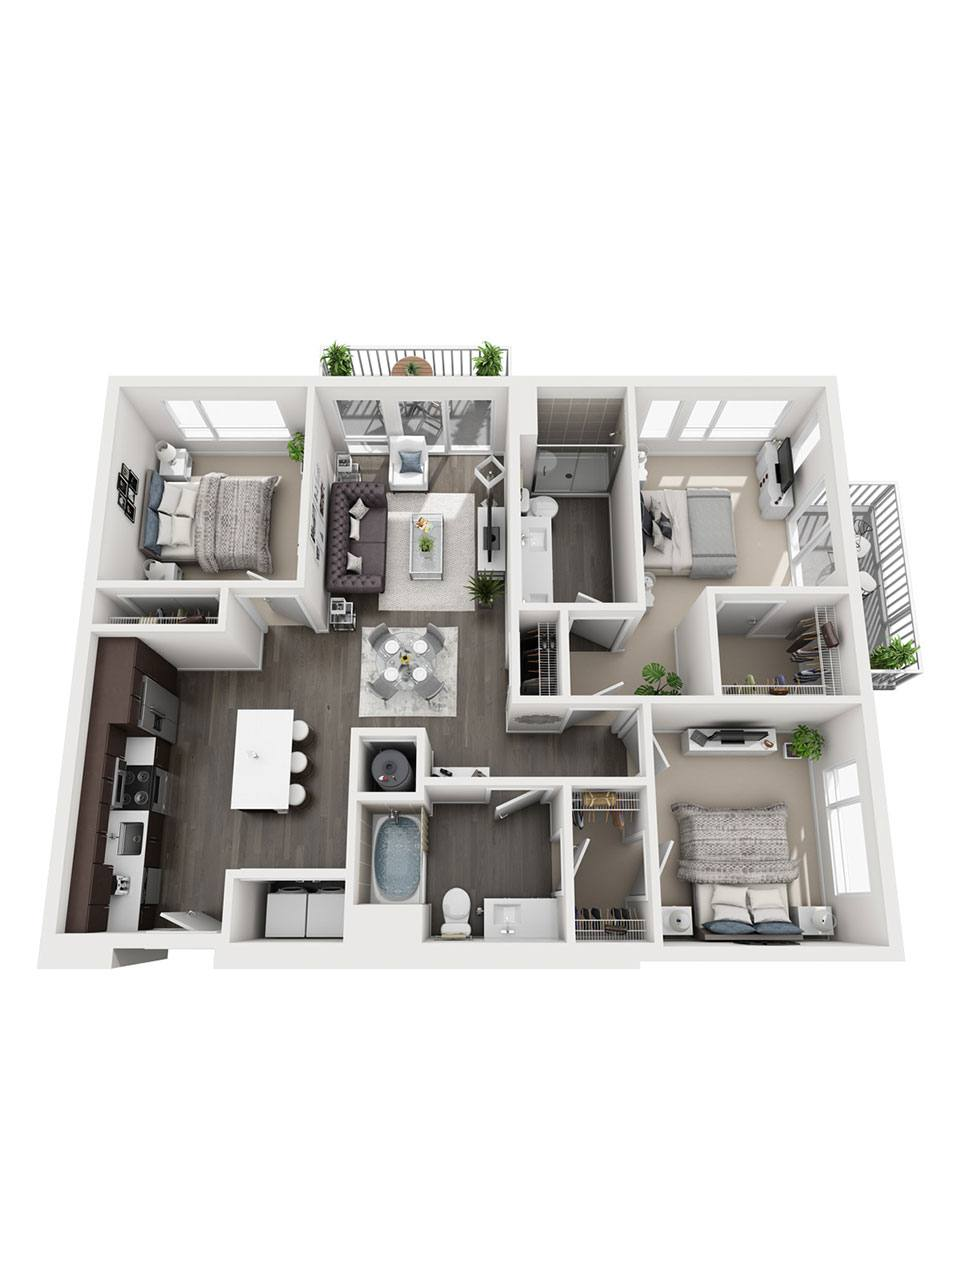 Plan 3 Bedroom – C1 | 2 Bath